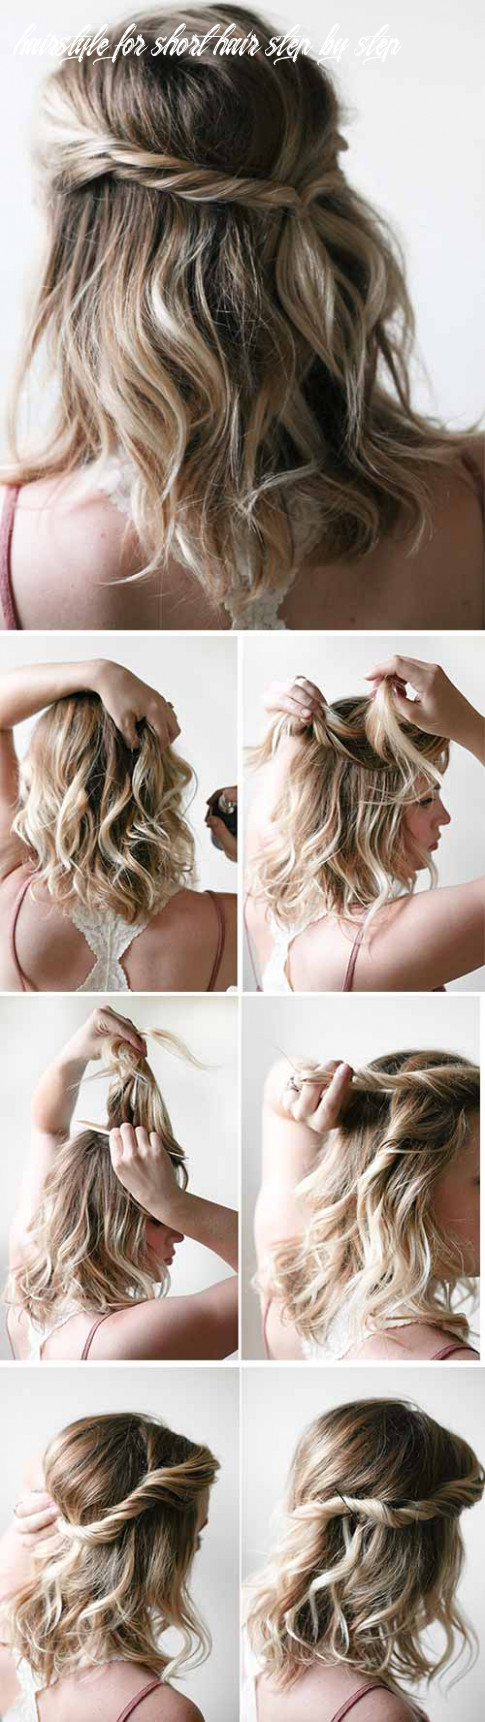 11 incredible diy short hairstyles a step by step guide hairstyle for short hair step by step